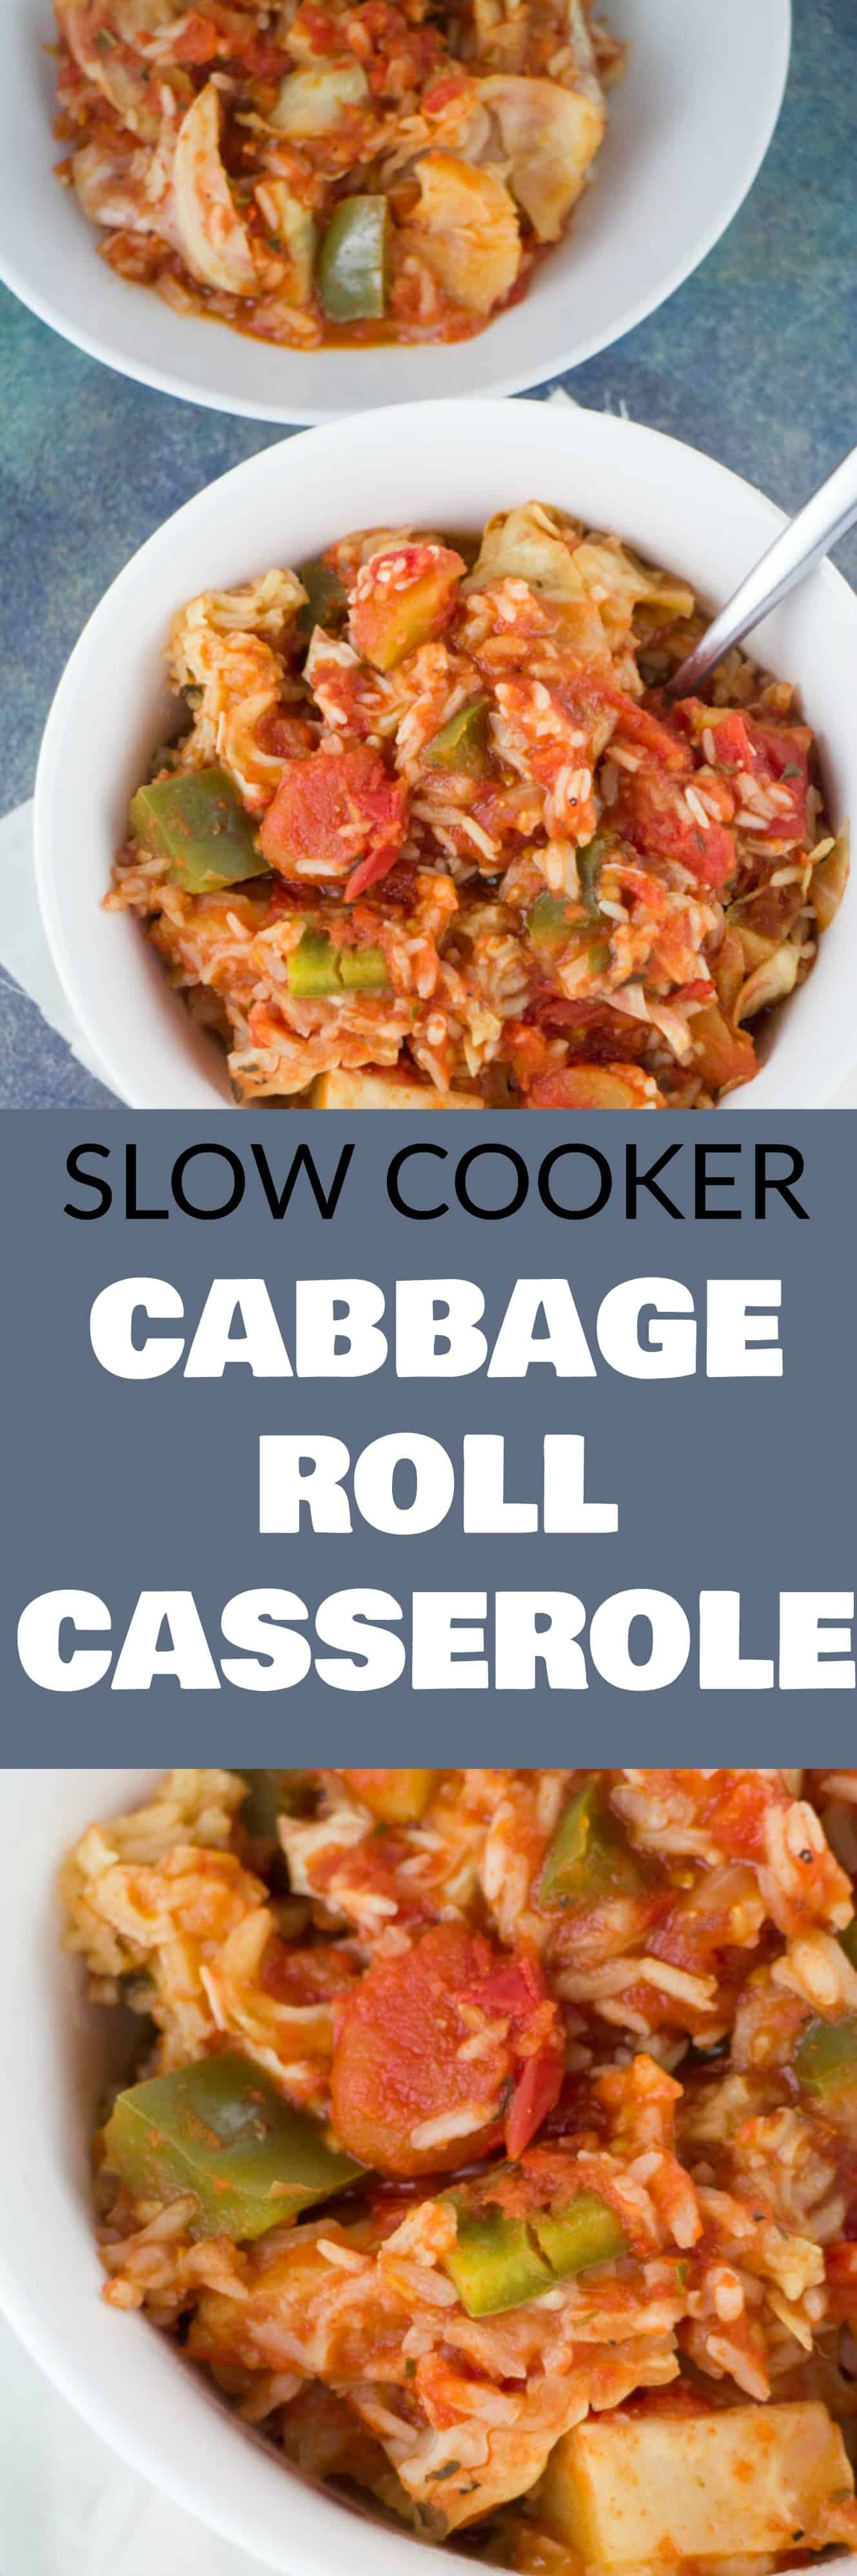 SLOW COOKER Cabbage Roll Casserole! This easy recipe is made in the crockpot and ready in 4 hours! This is a Polish family recipe called Halupkie!